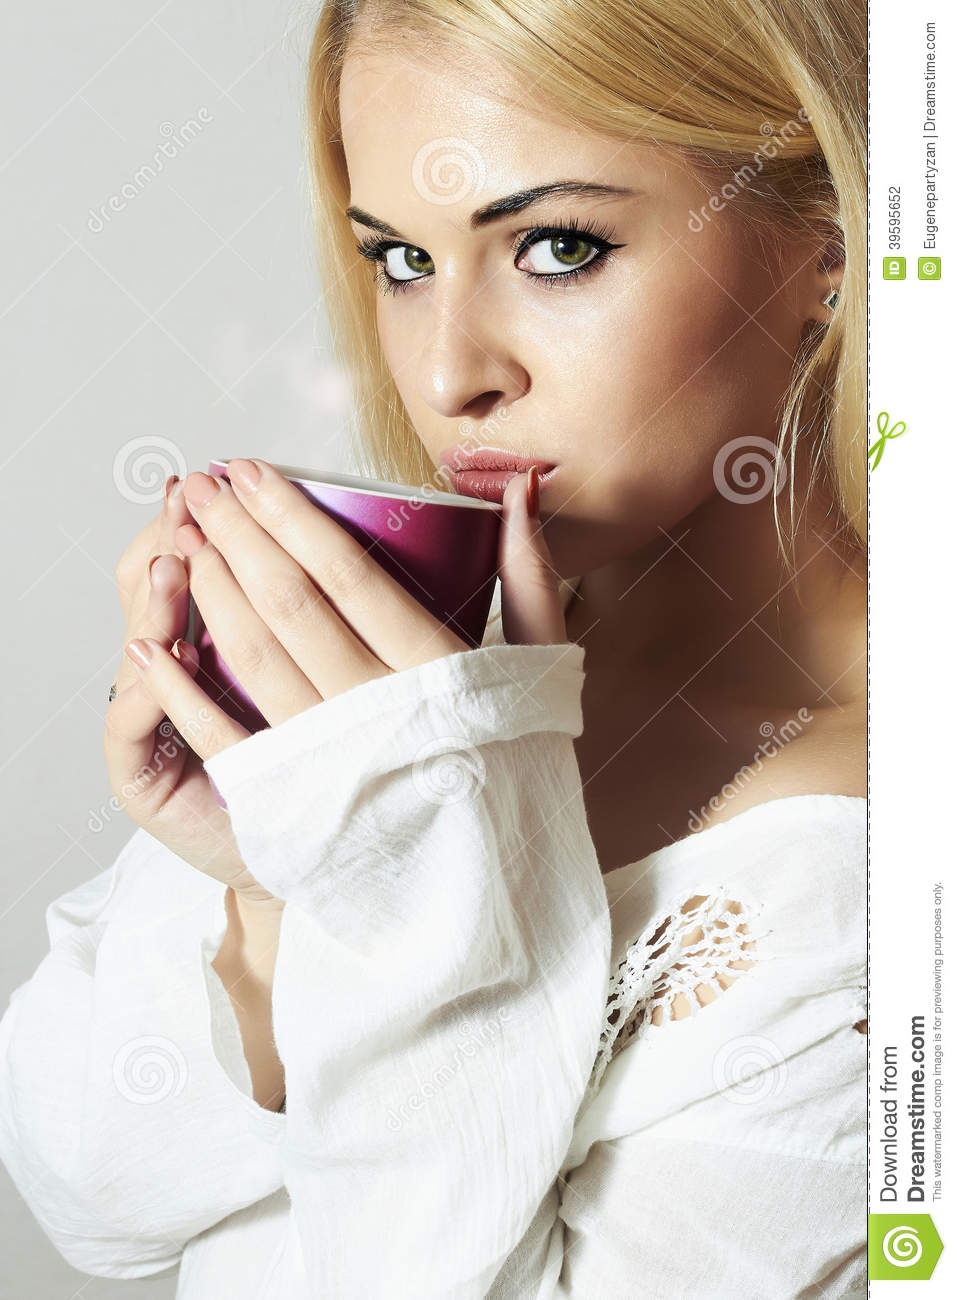 Girl drinking coffee to go beautiful blond woman drinking